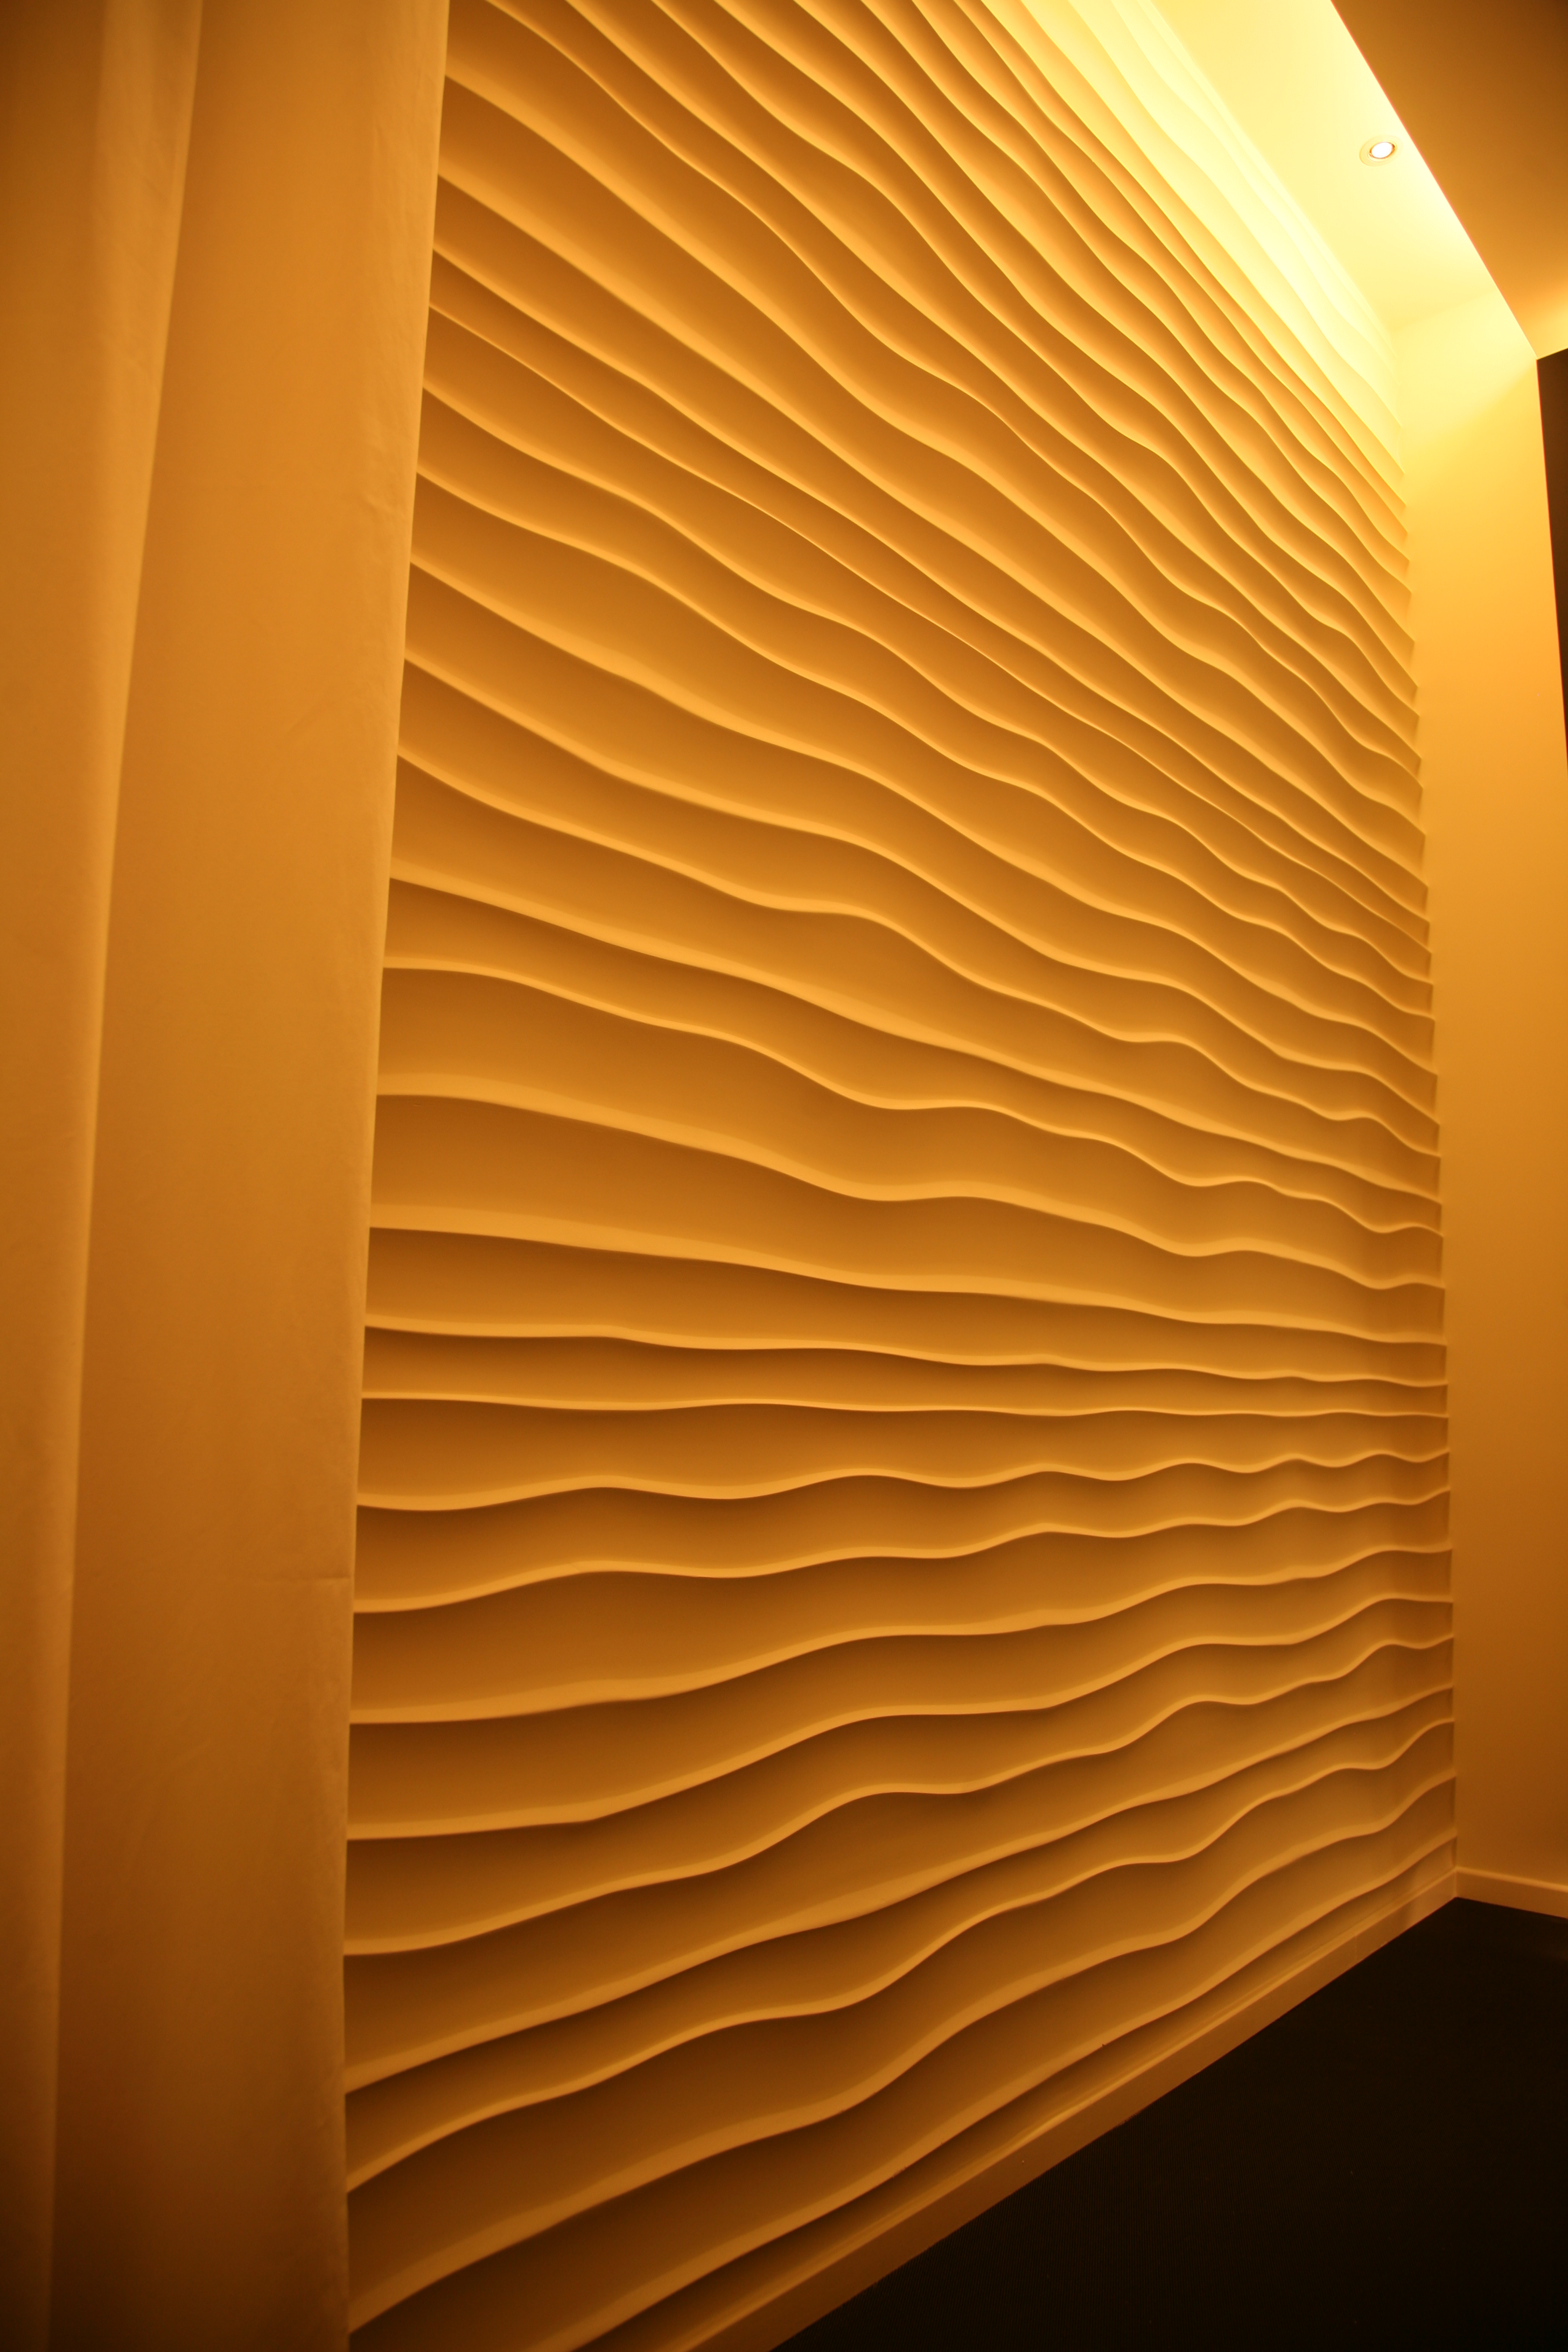 3d wall panels choppy design deco stones. Black Bedroom Furniture Sets. Home Design Ideas